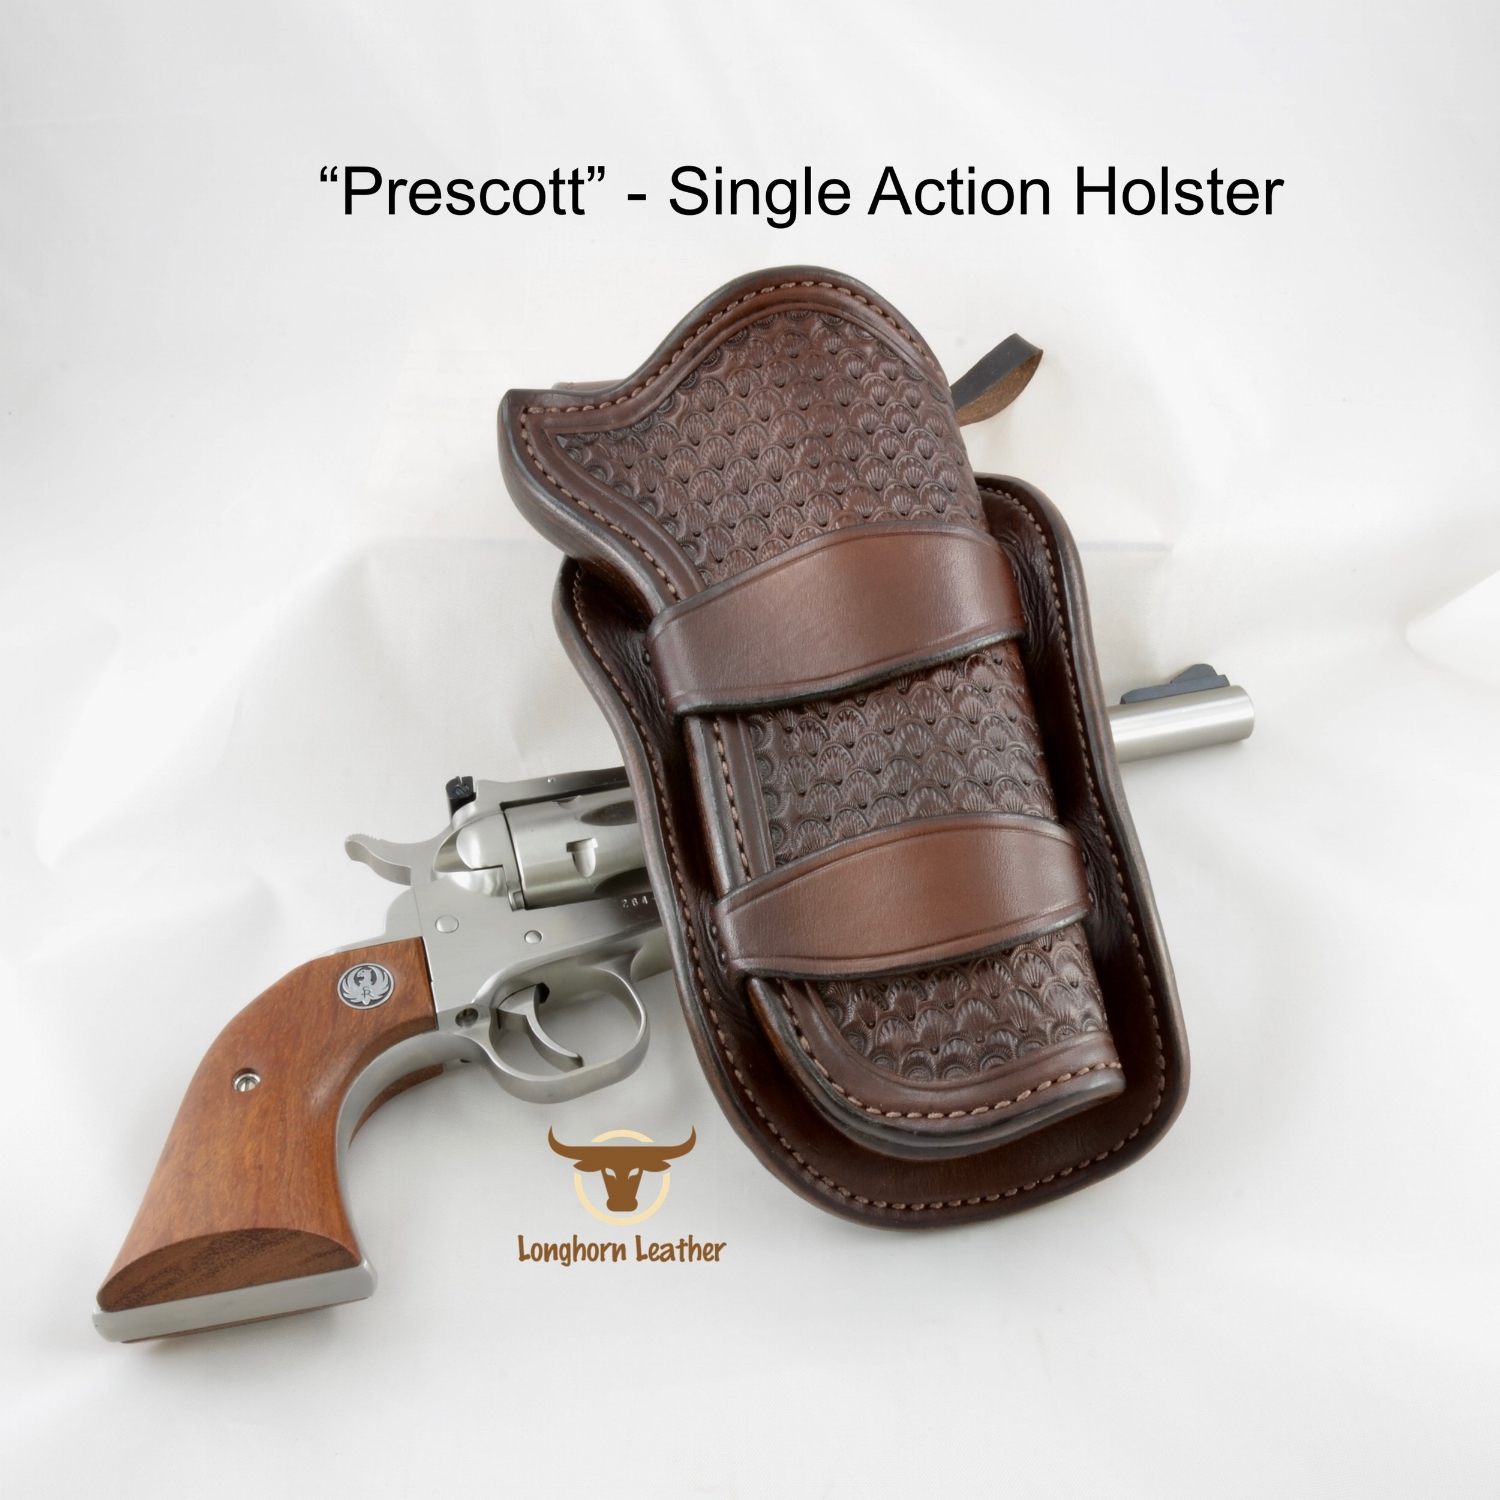 Longhorn Leather AZ - Single Action Holster featuring the %22Prescott%22 design.jpg